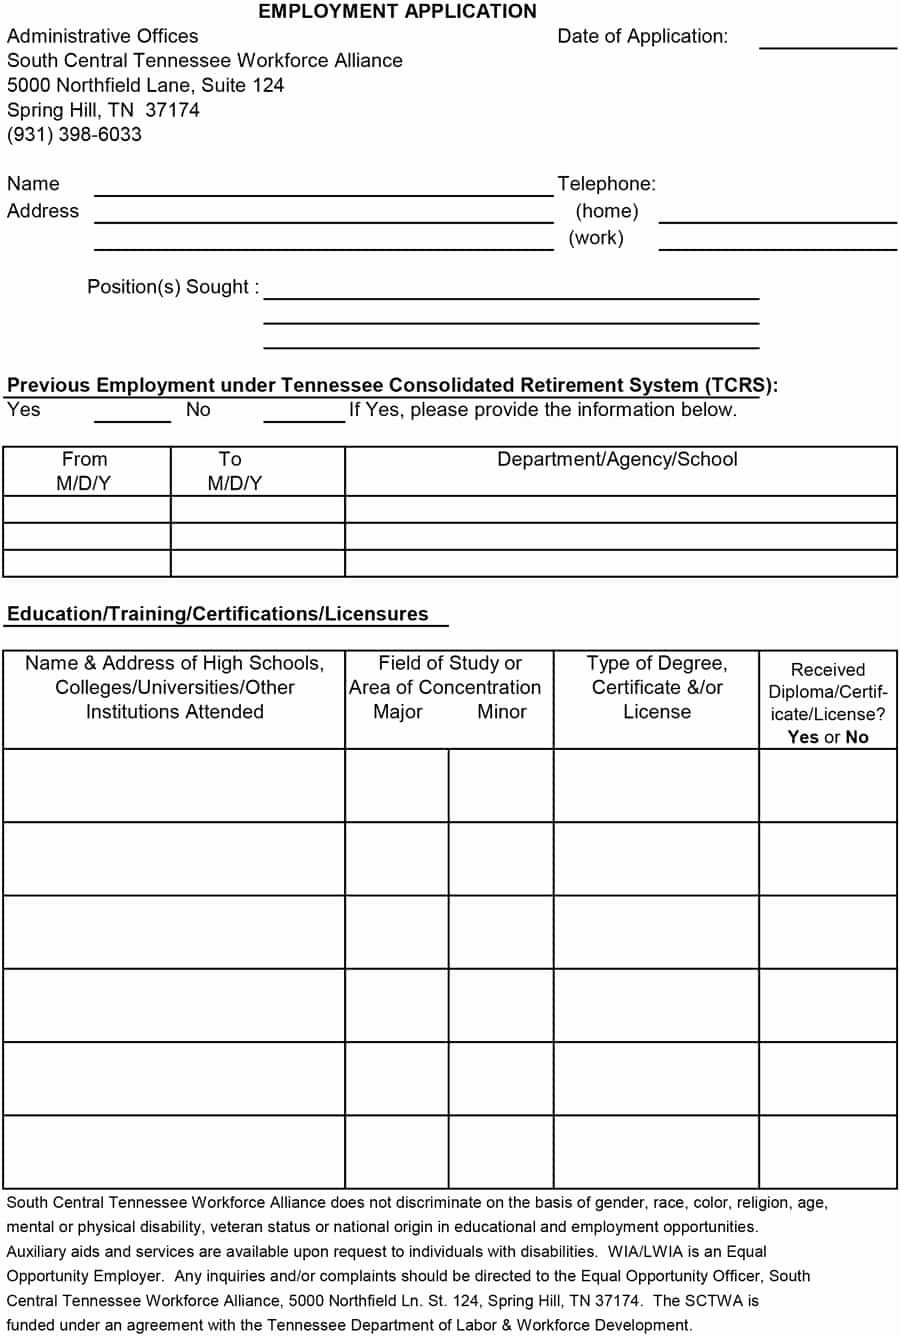 Free Employment Application form Download Best Of 50 Free Employment Job Application form Templates